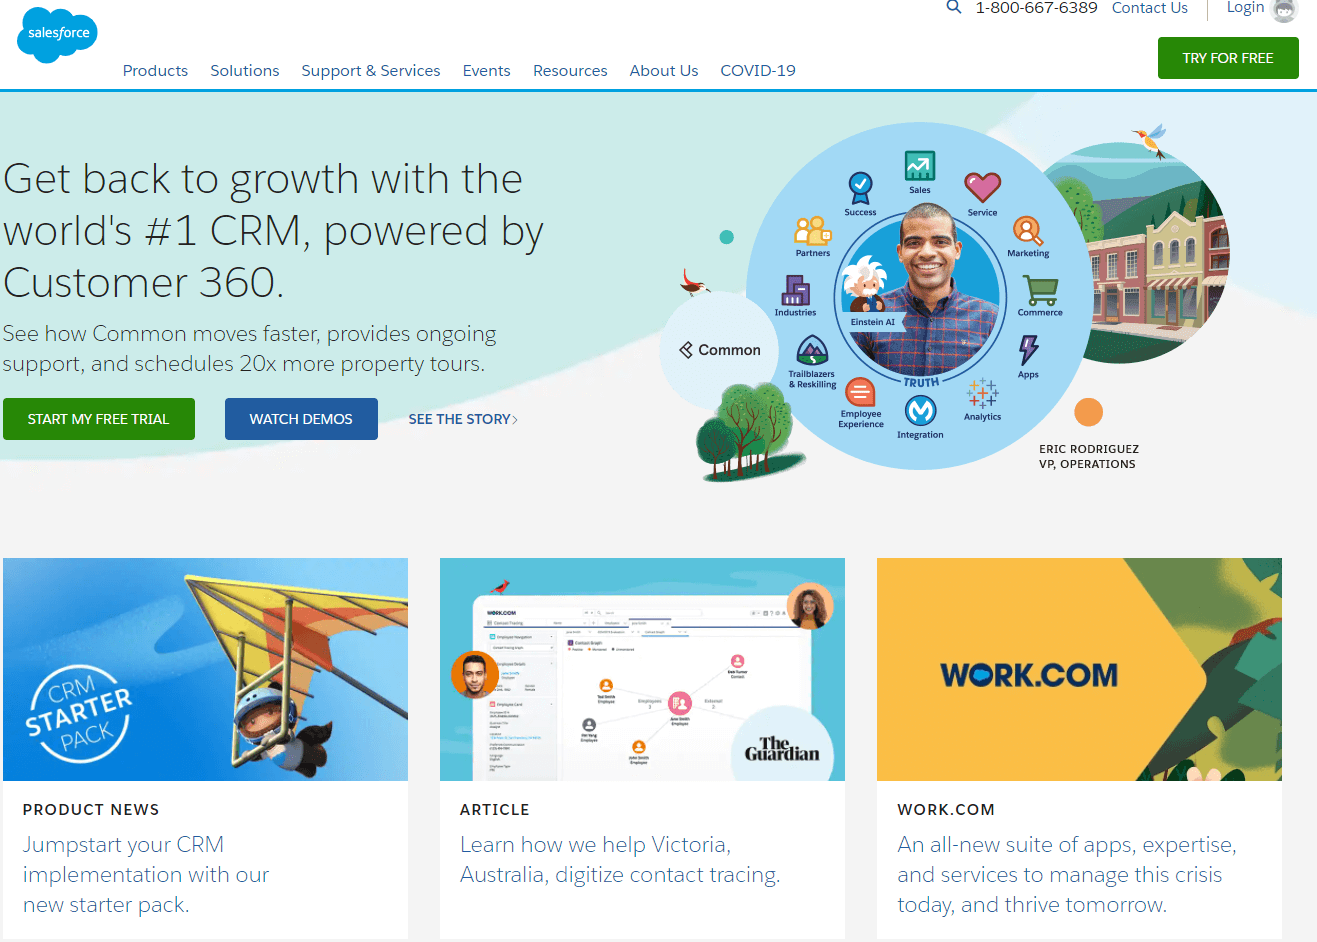 Salesforce is a great enterprise CRM which can give you a 360view of your customers